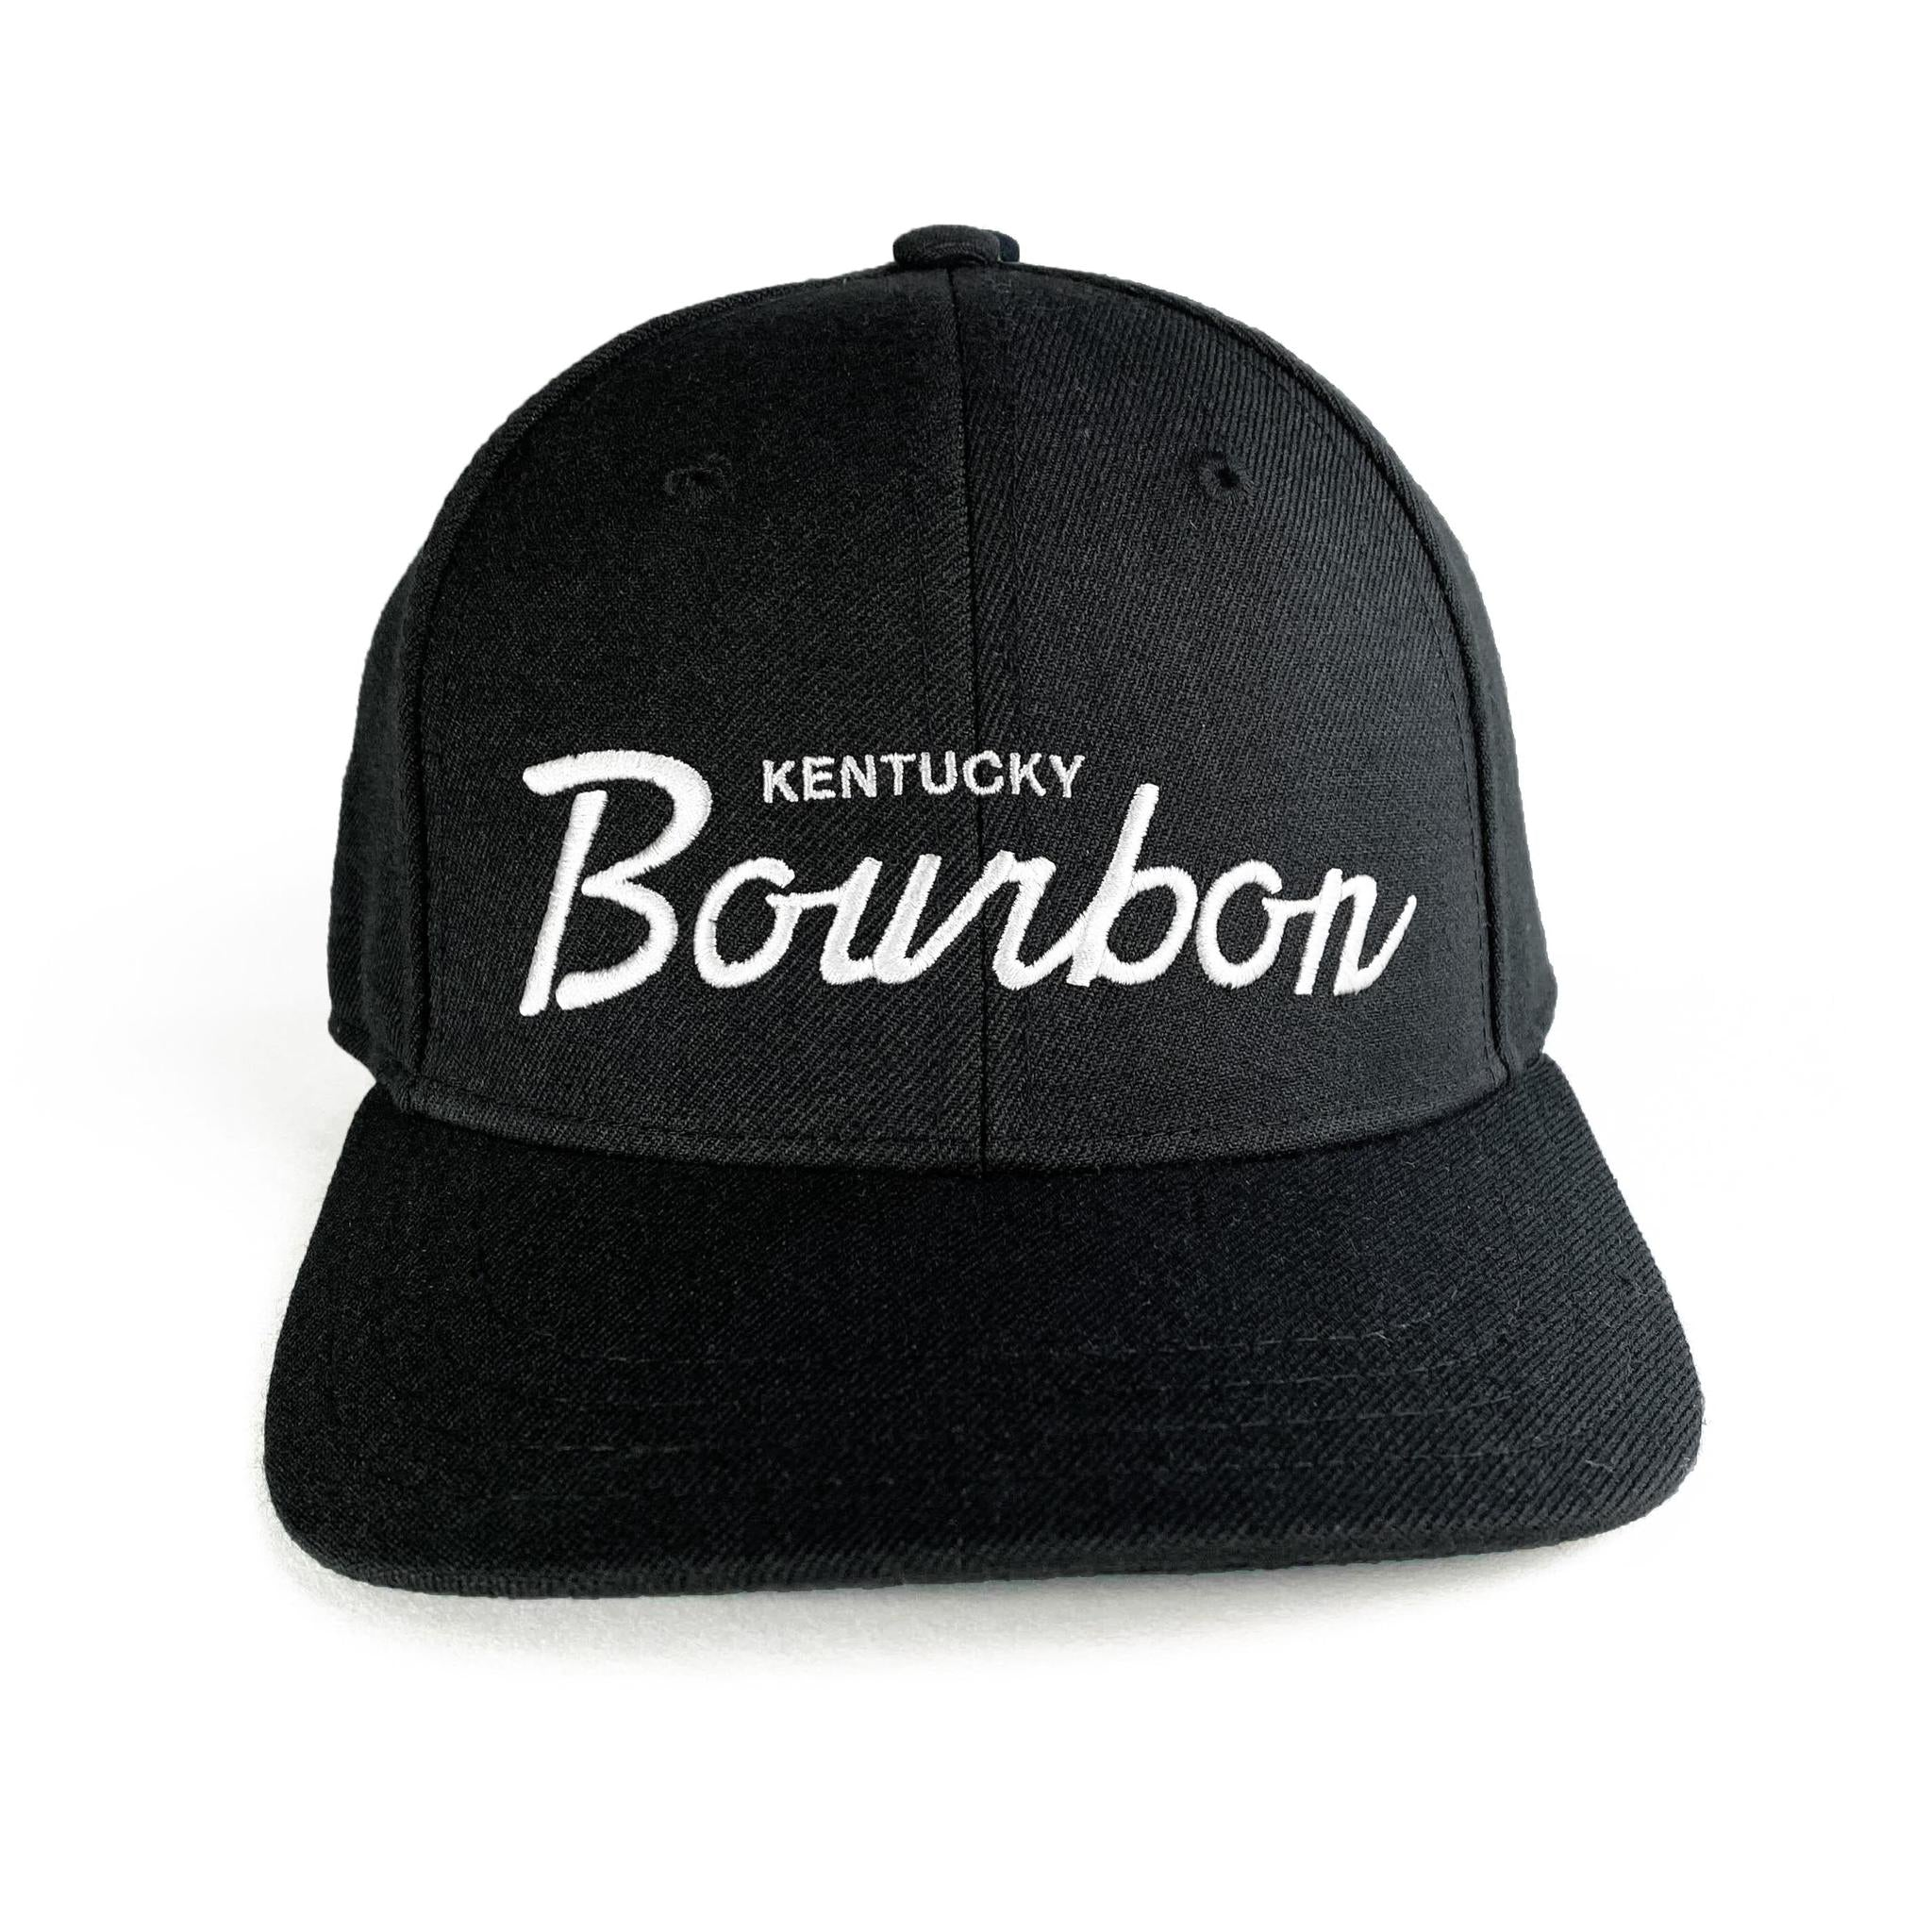 Kentucky Bourbon Vintage Hat-Hat-KY for KY Store